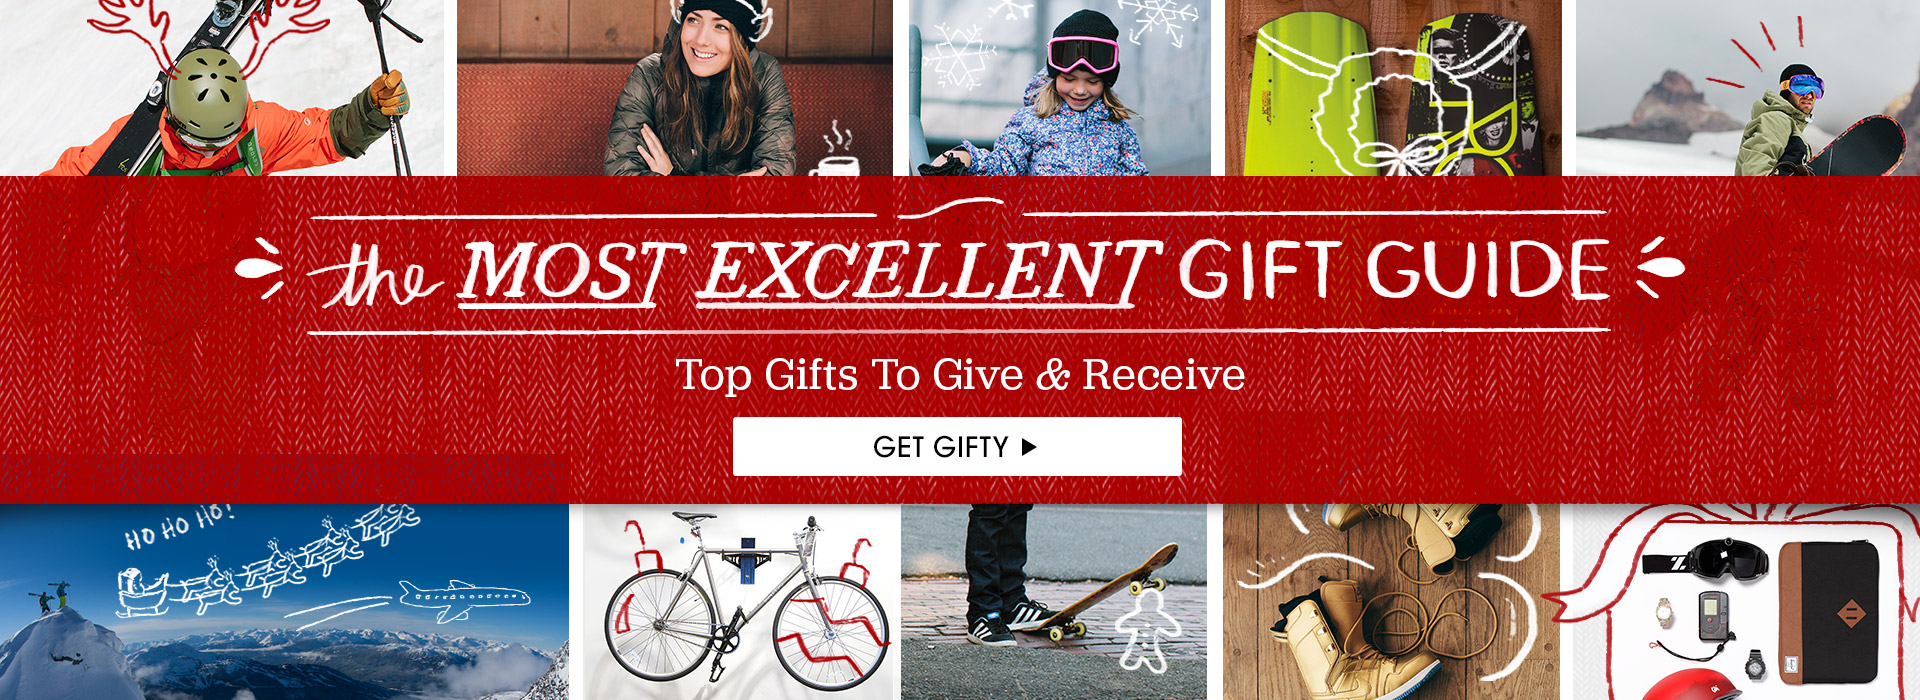 Shop the Most Excellent Gift Guide